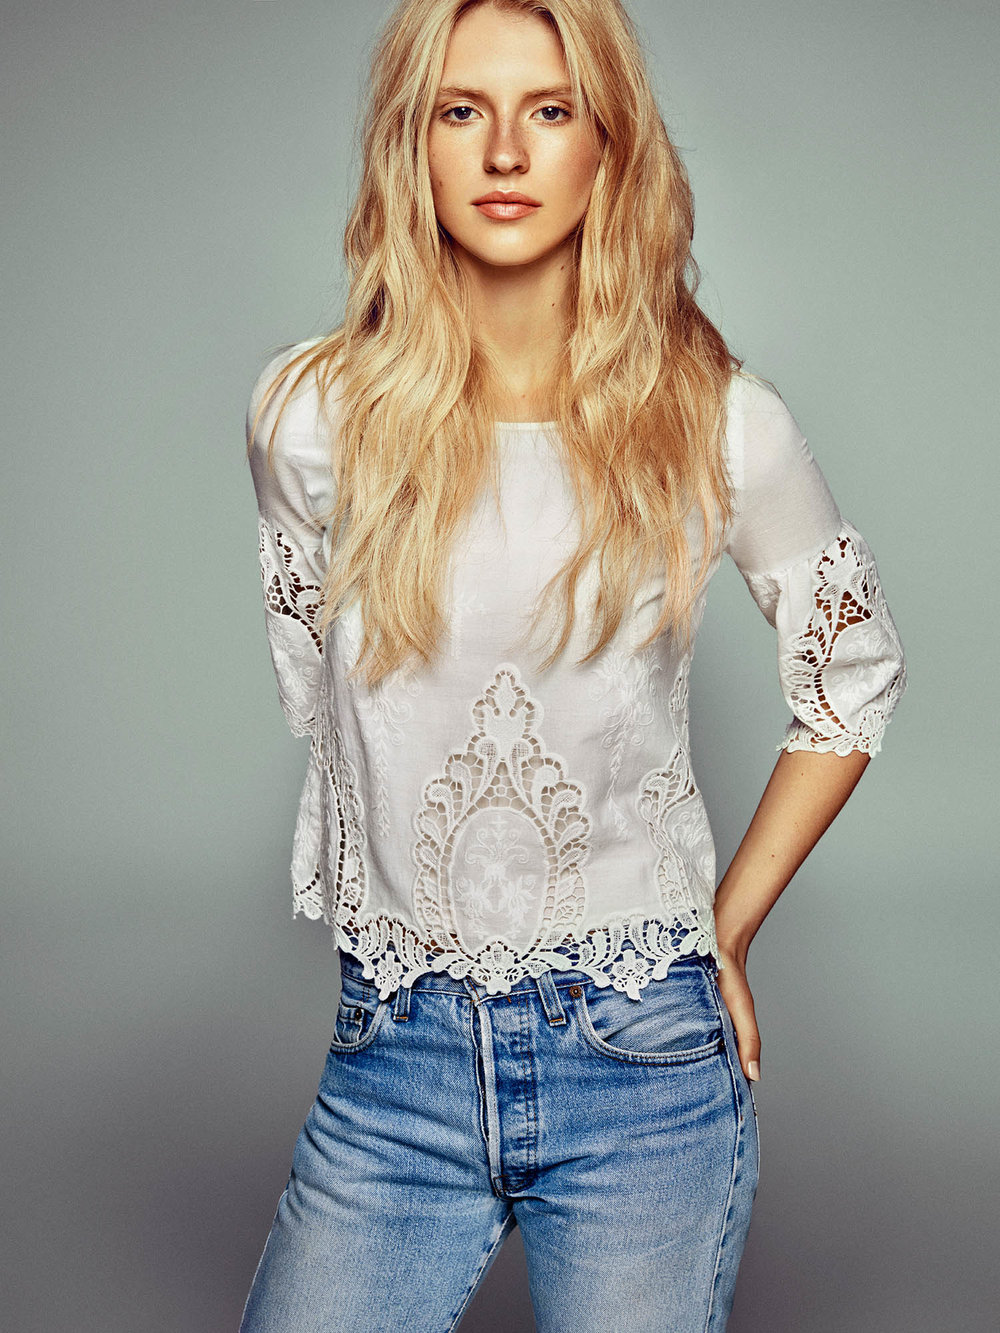 JG One and Other24519 Lilly lace top.jpg